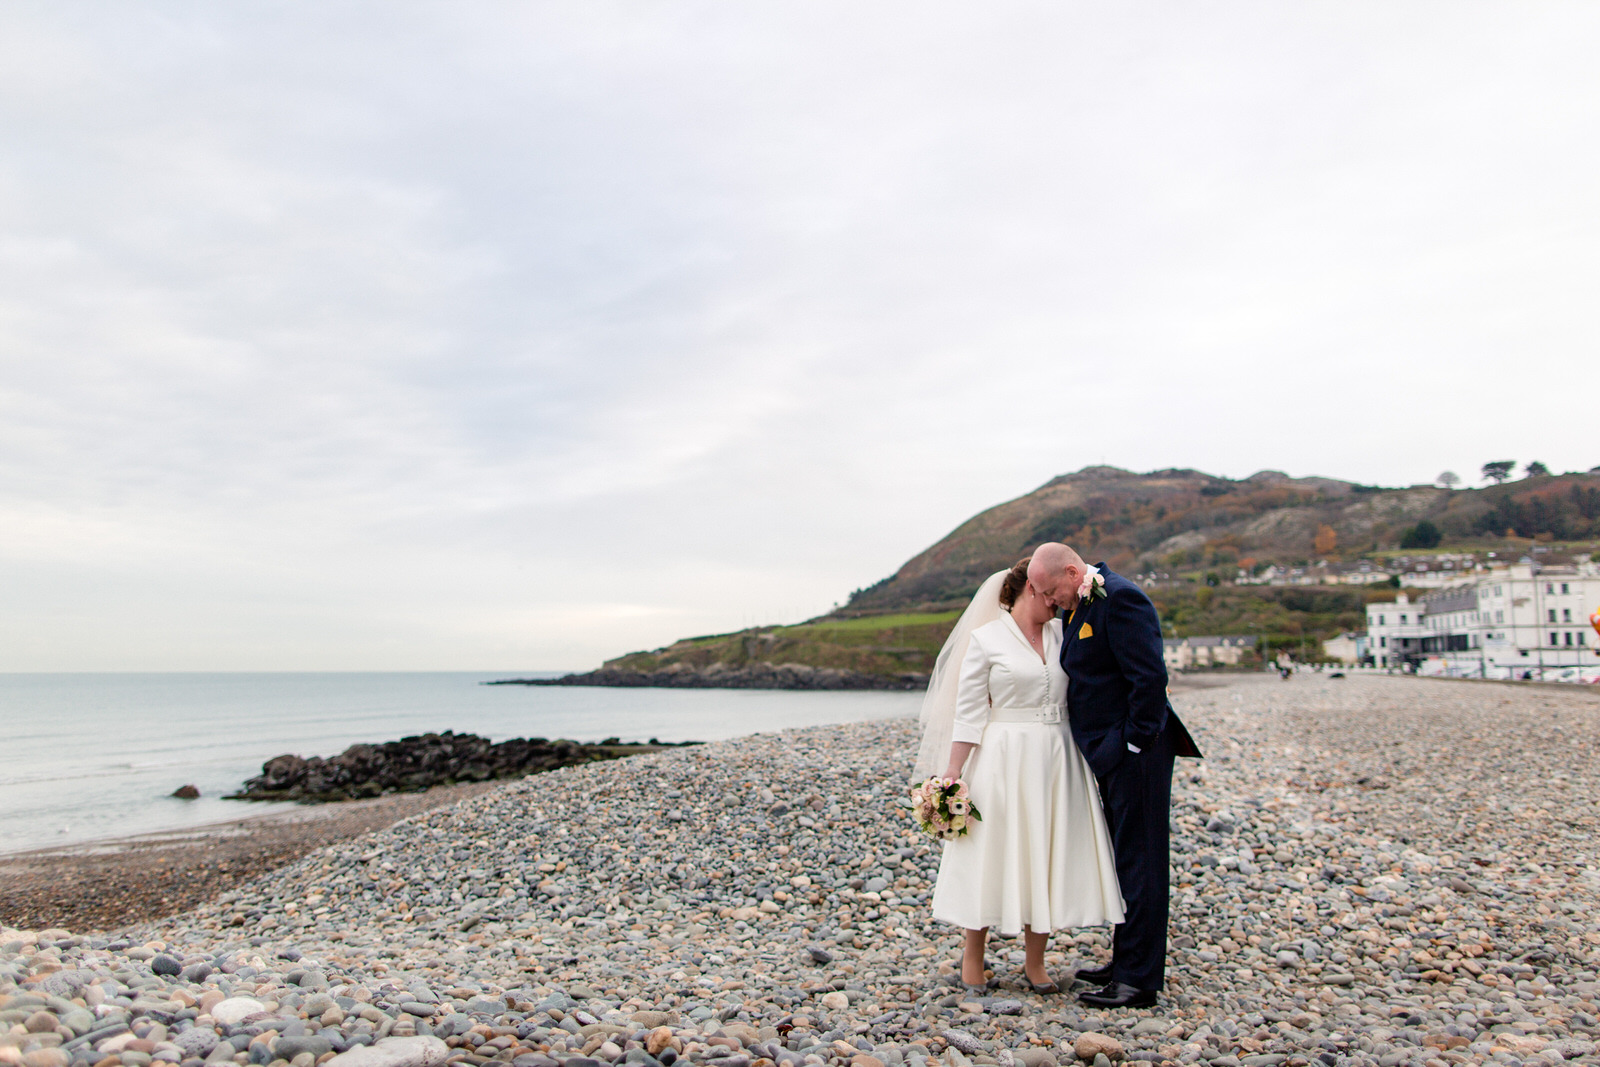 Roger-kenny-wedding-photographer-wicklow-glenview_054.jpg